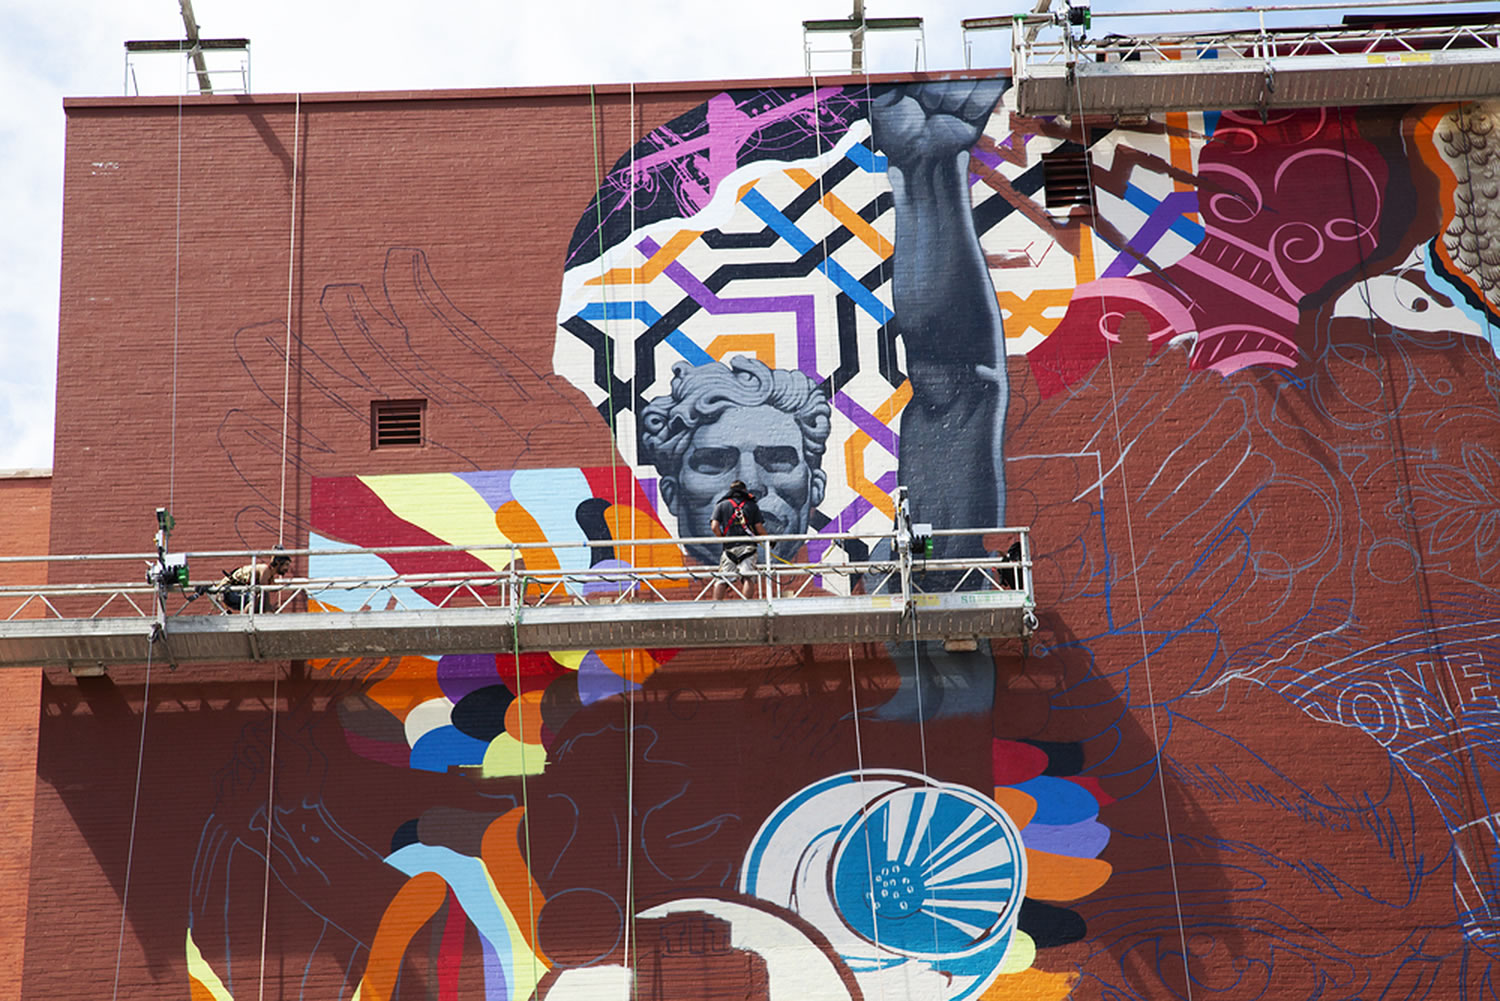 Tristan Eaton working on a mural, colorful art